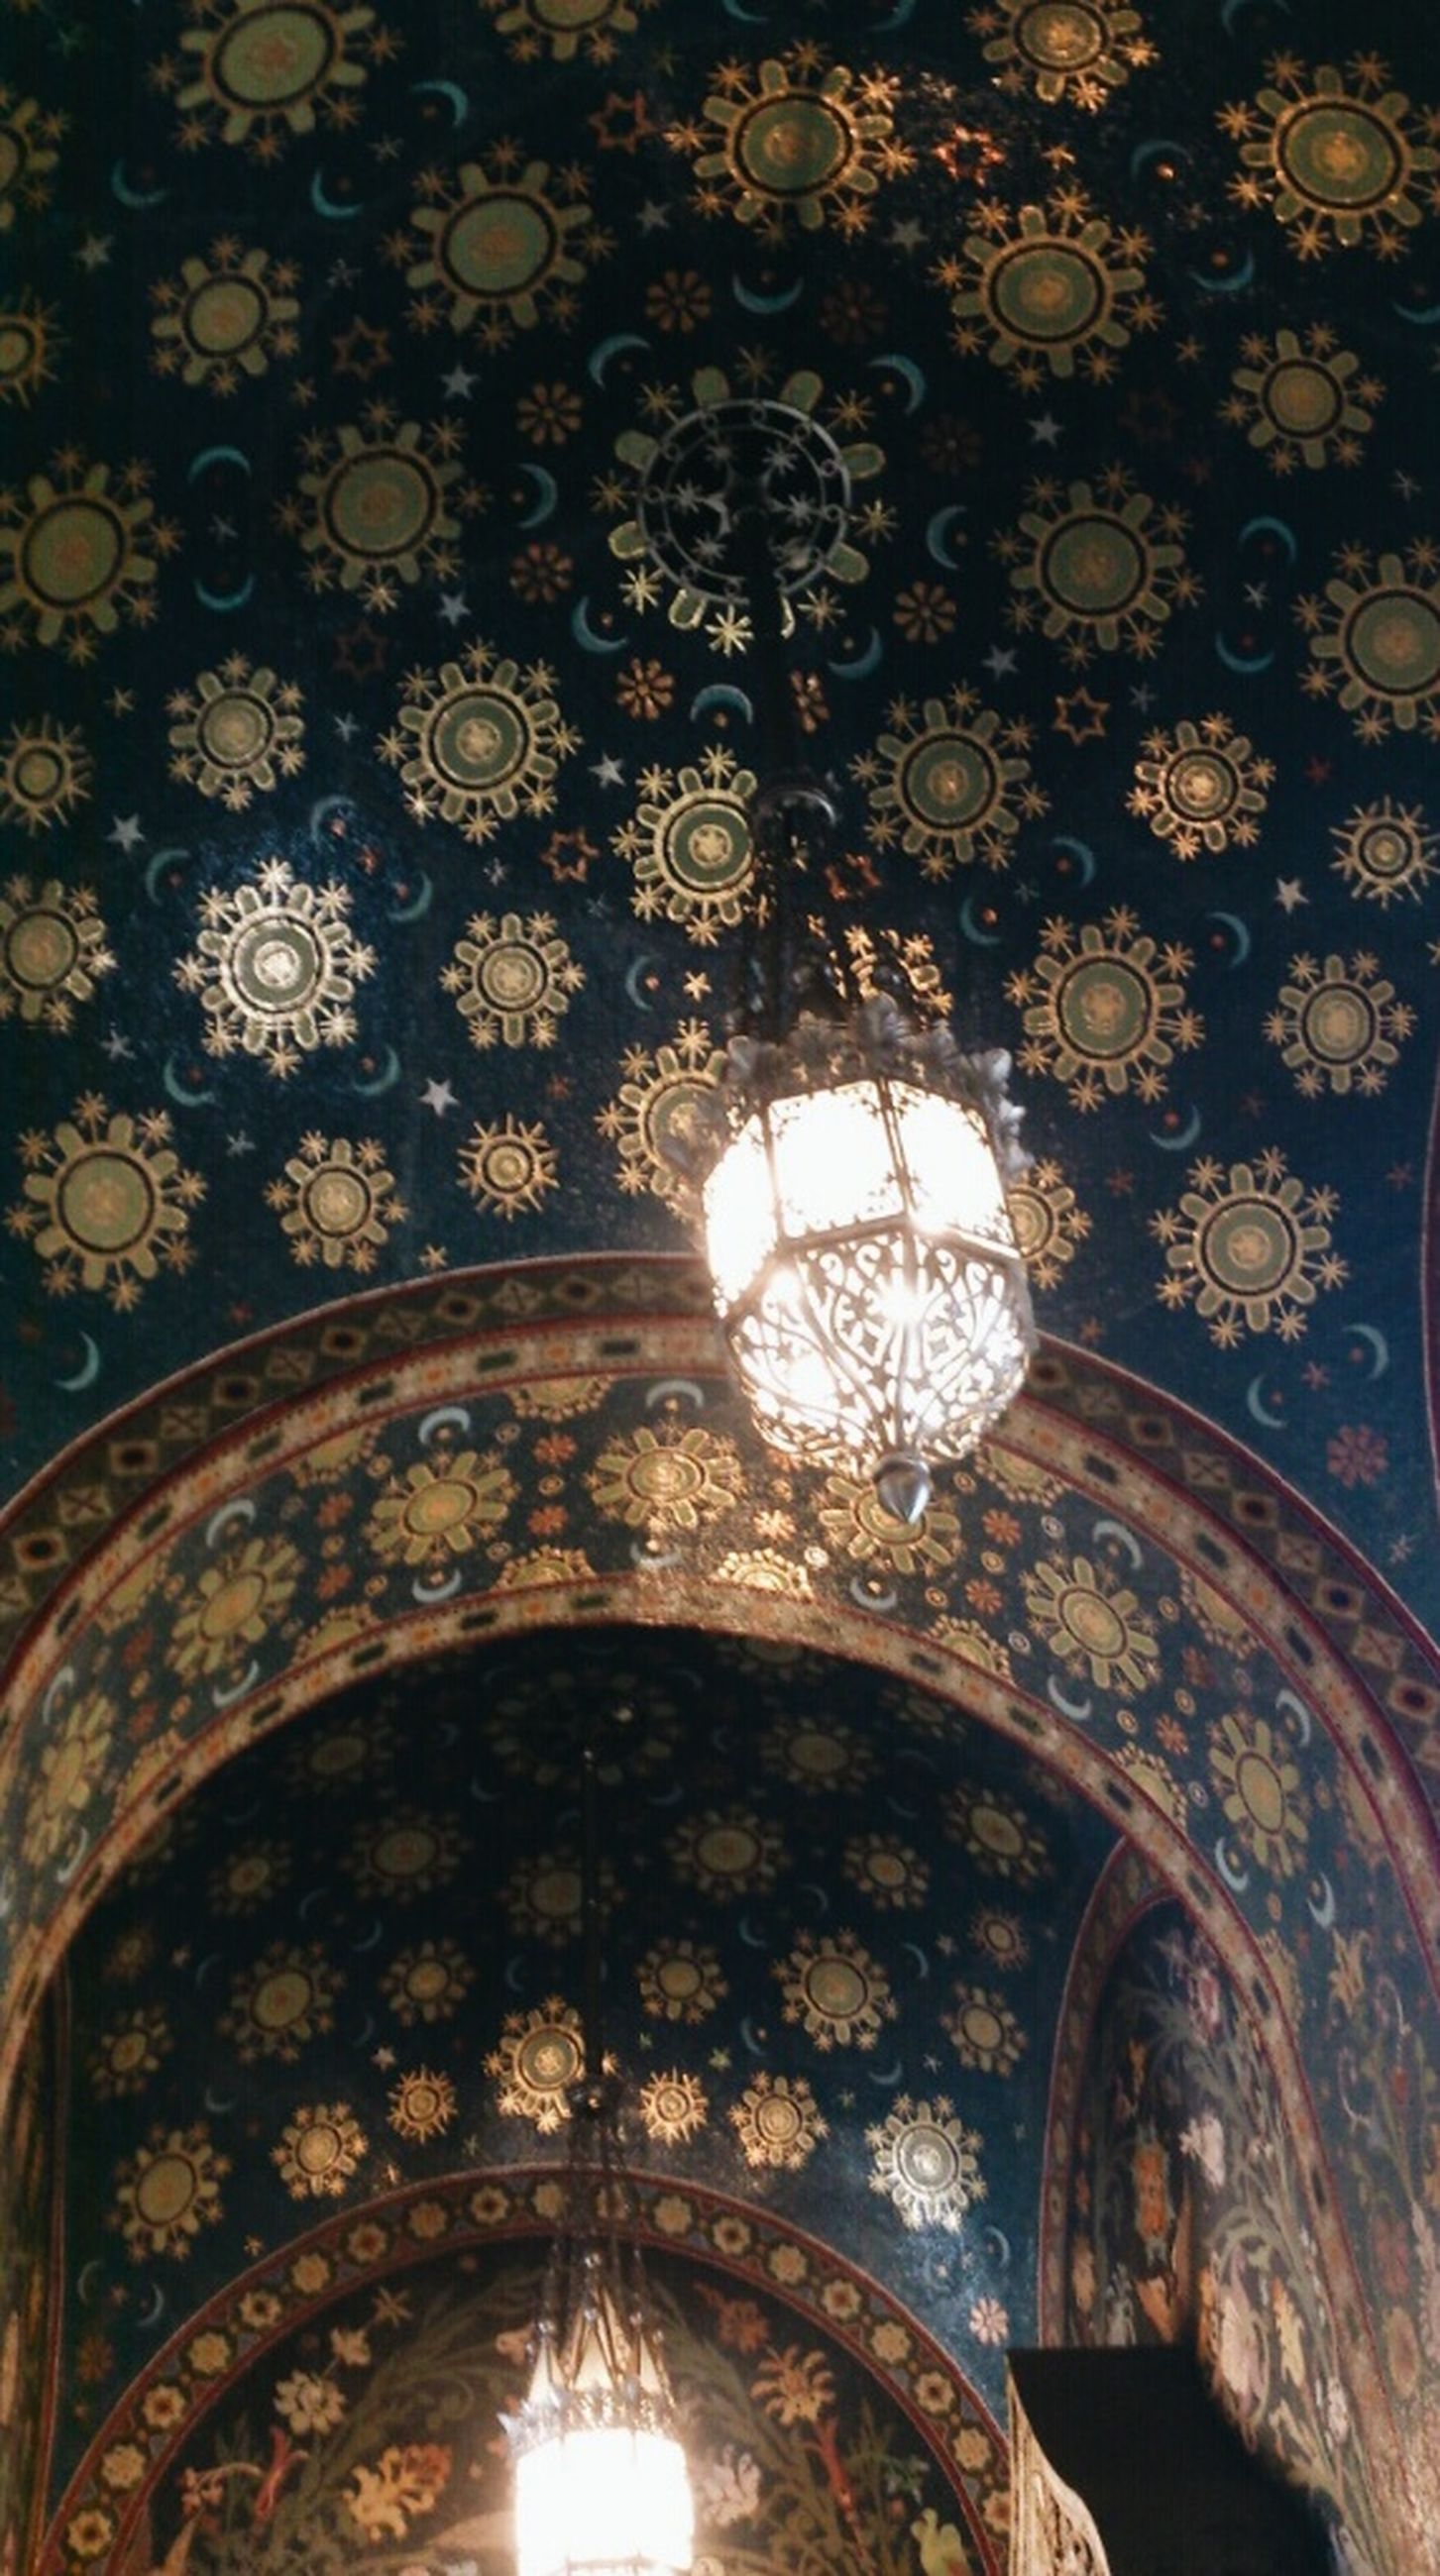 low angle view, indoors, architecture, built structure, ceiling, arch, illuminated, pattern, ornate, design, lighting equipment, religion, place of worship, no people, architectural feature, spirituality, history, decoration, sunlight